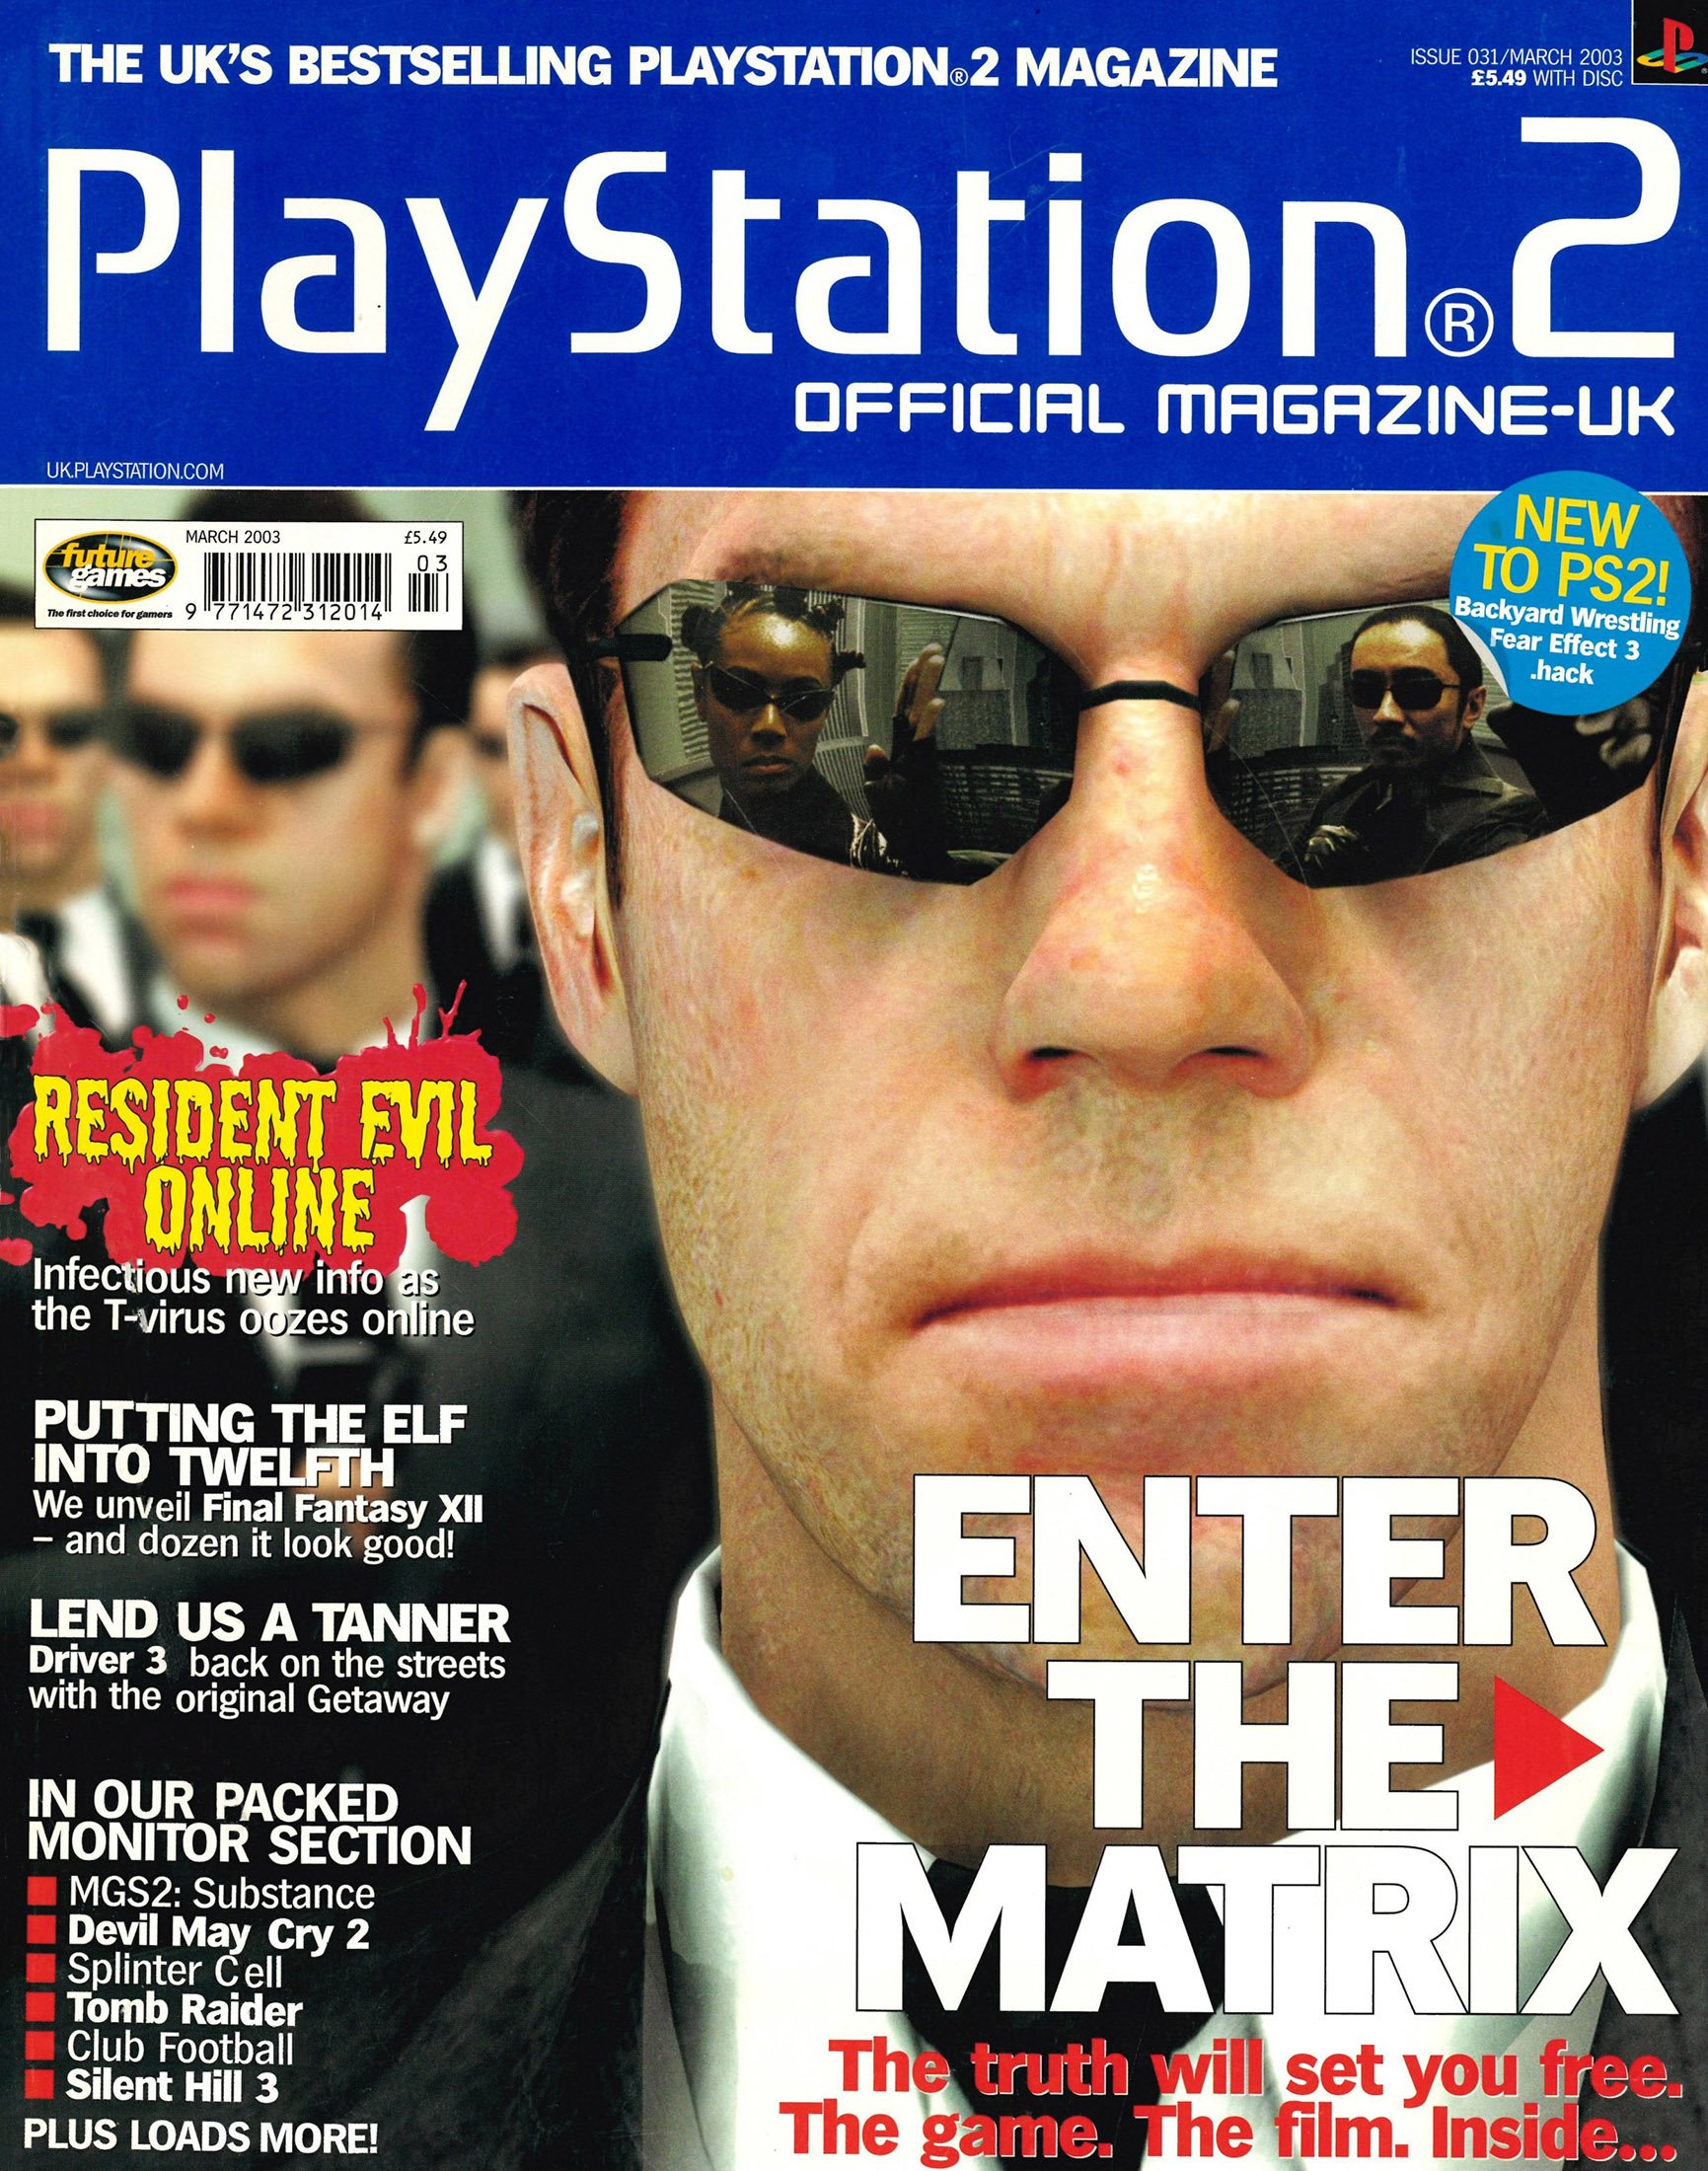 Official Playstation 2 Magazine UK 031 (March 2003)